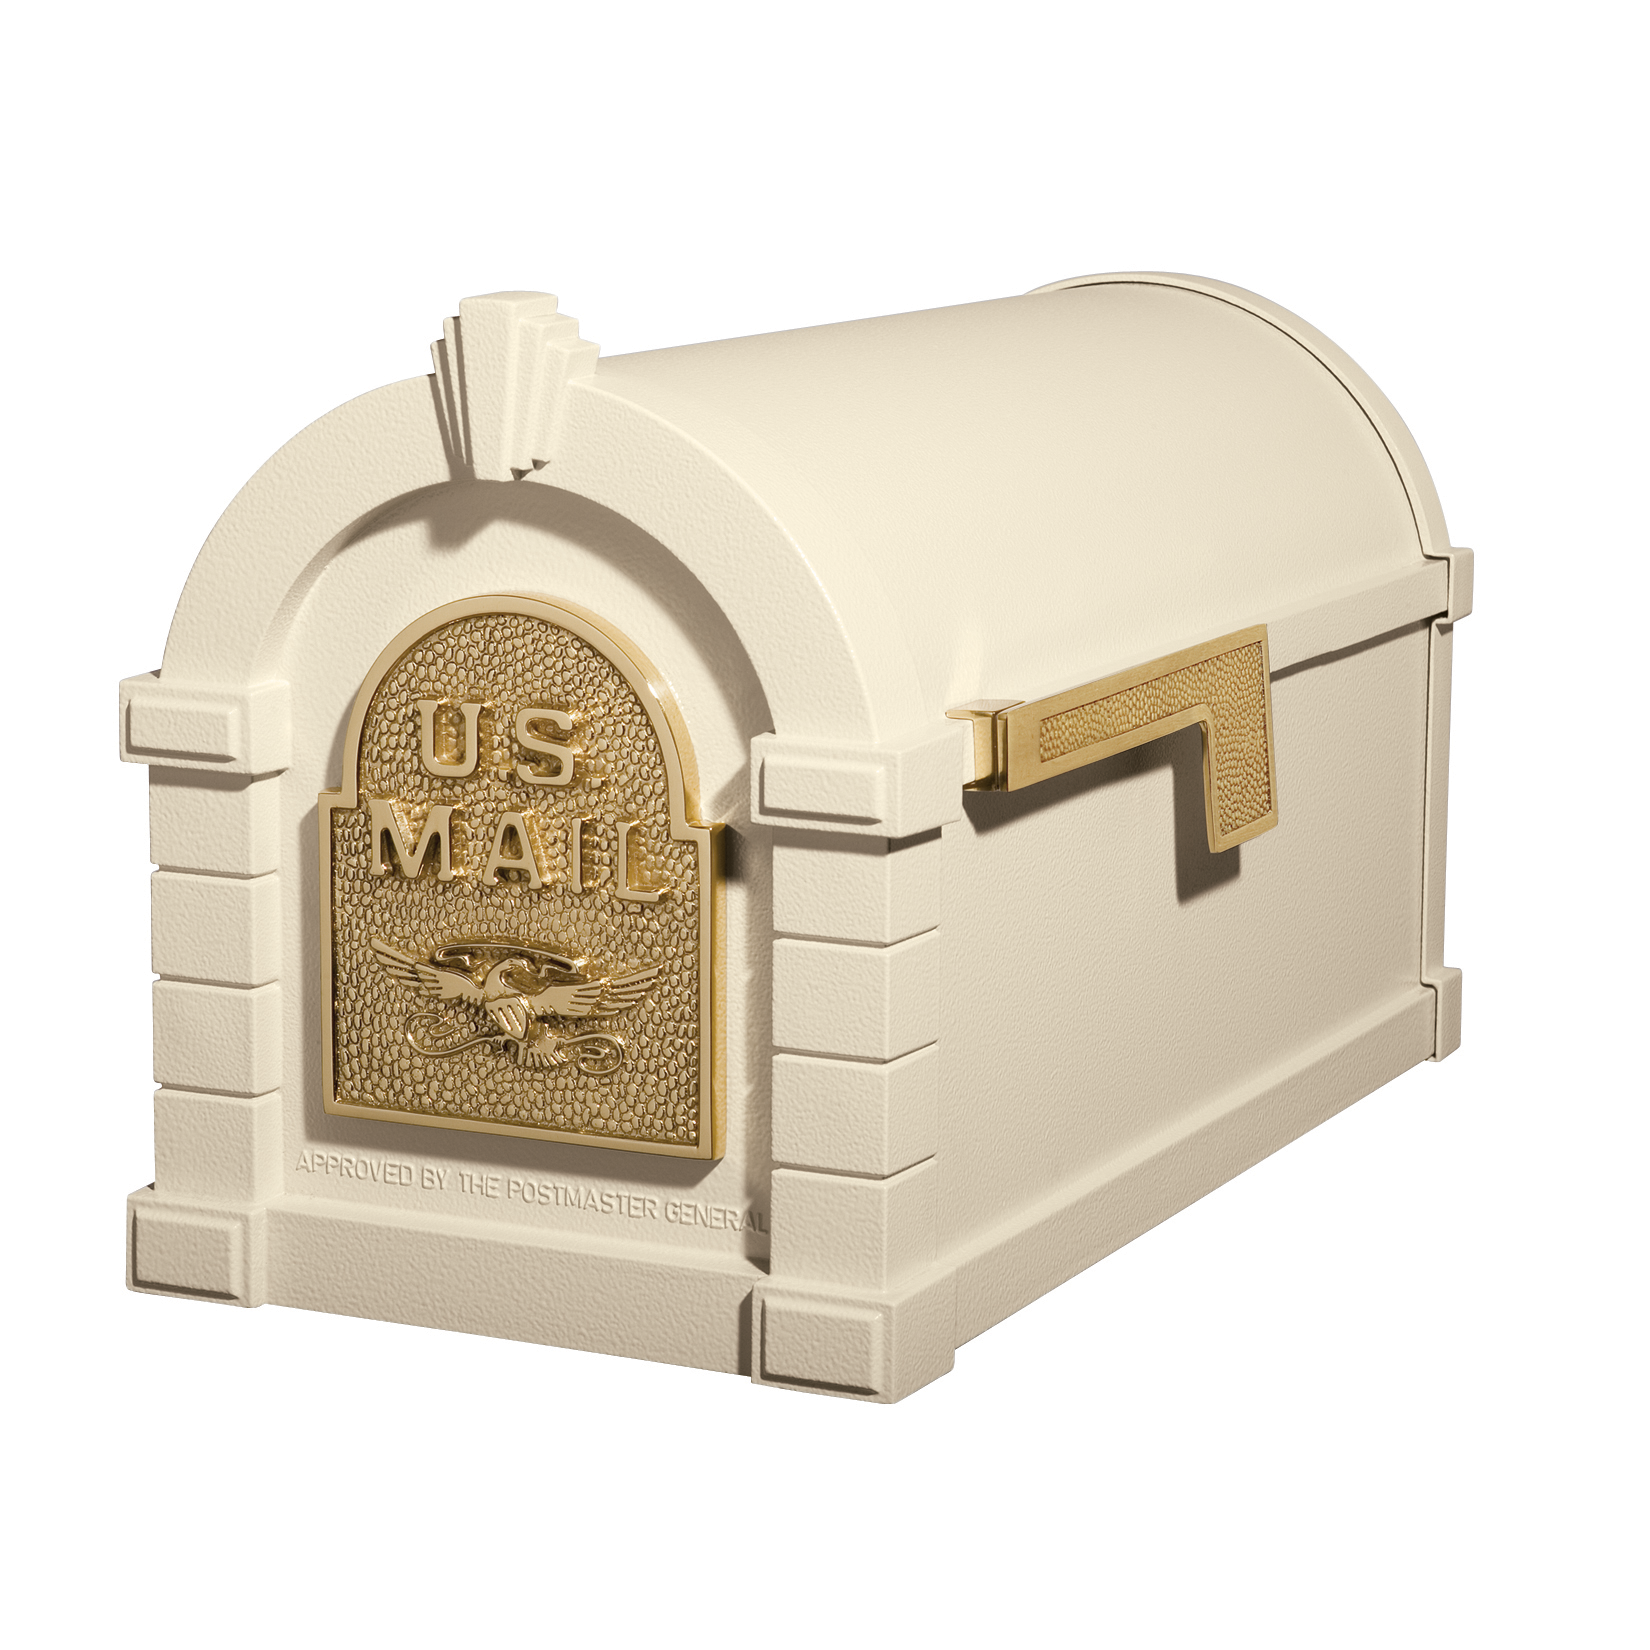 Gaines Fleur De Lis Keystone MailboxesAlmond with Stain Nickel